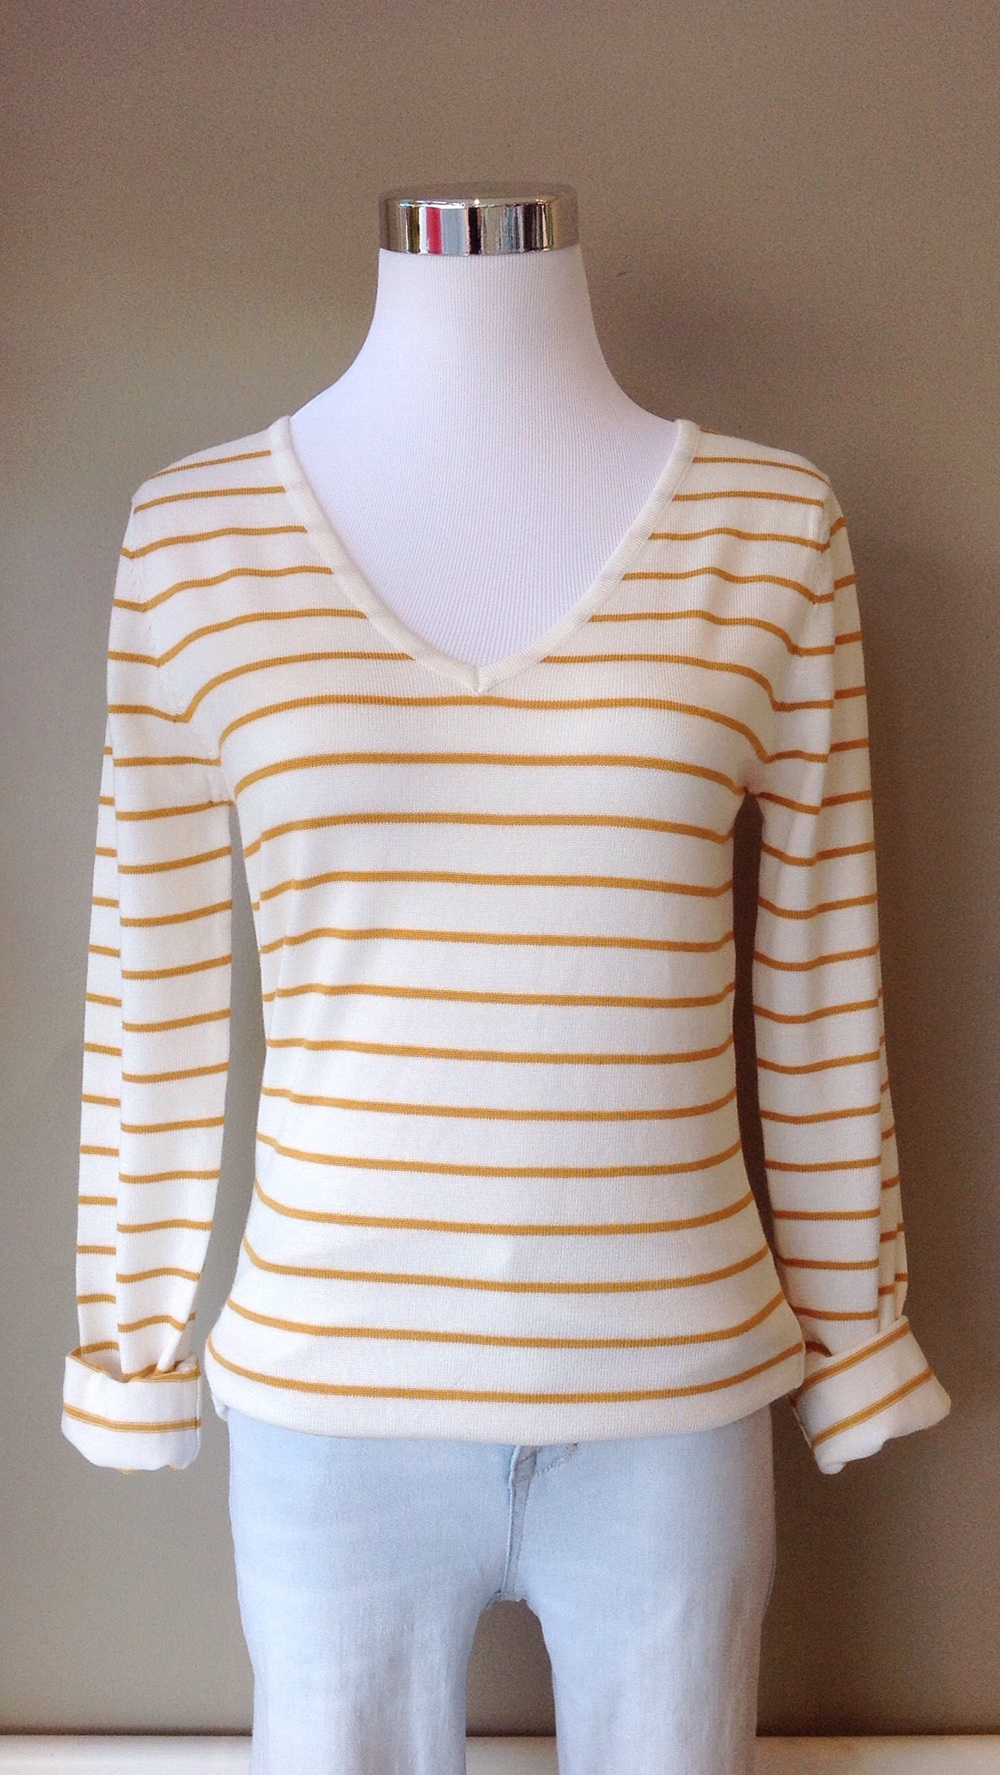 V neck stripe sweater in ivory/gold, $28